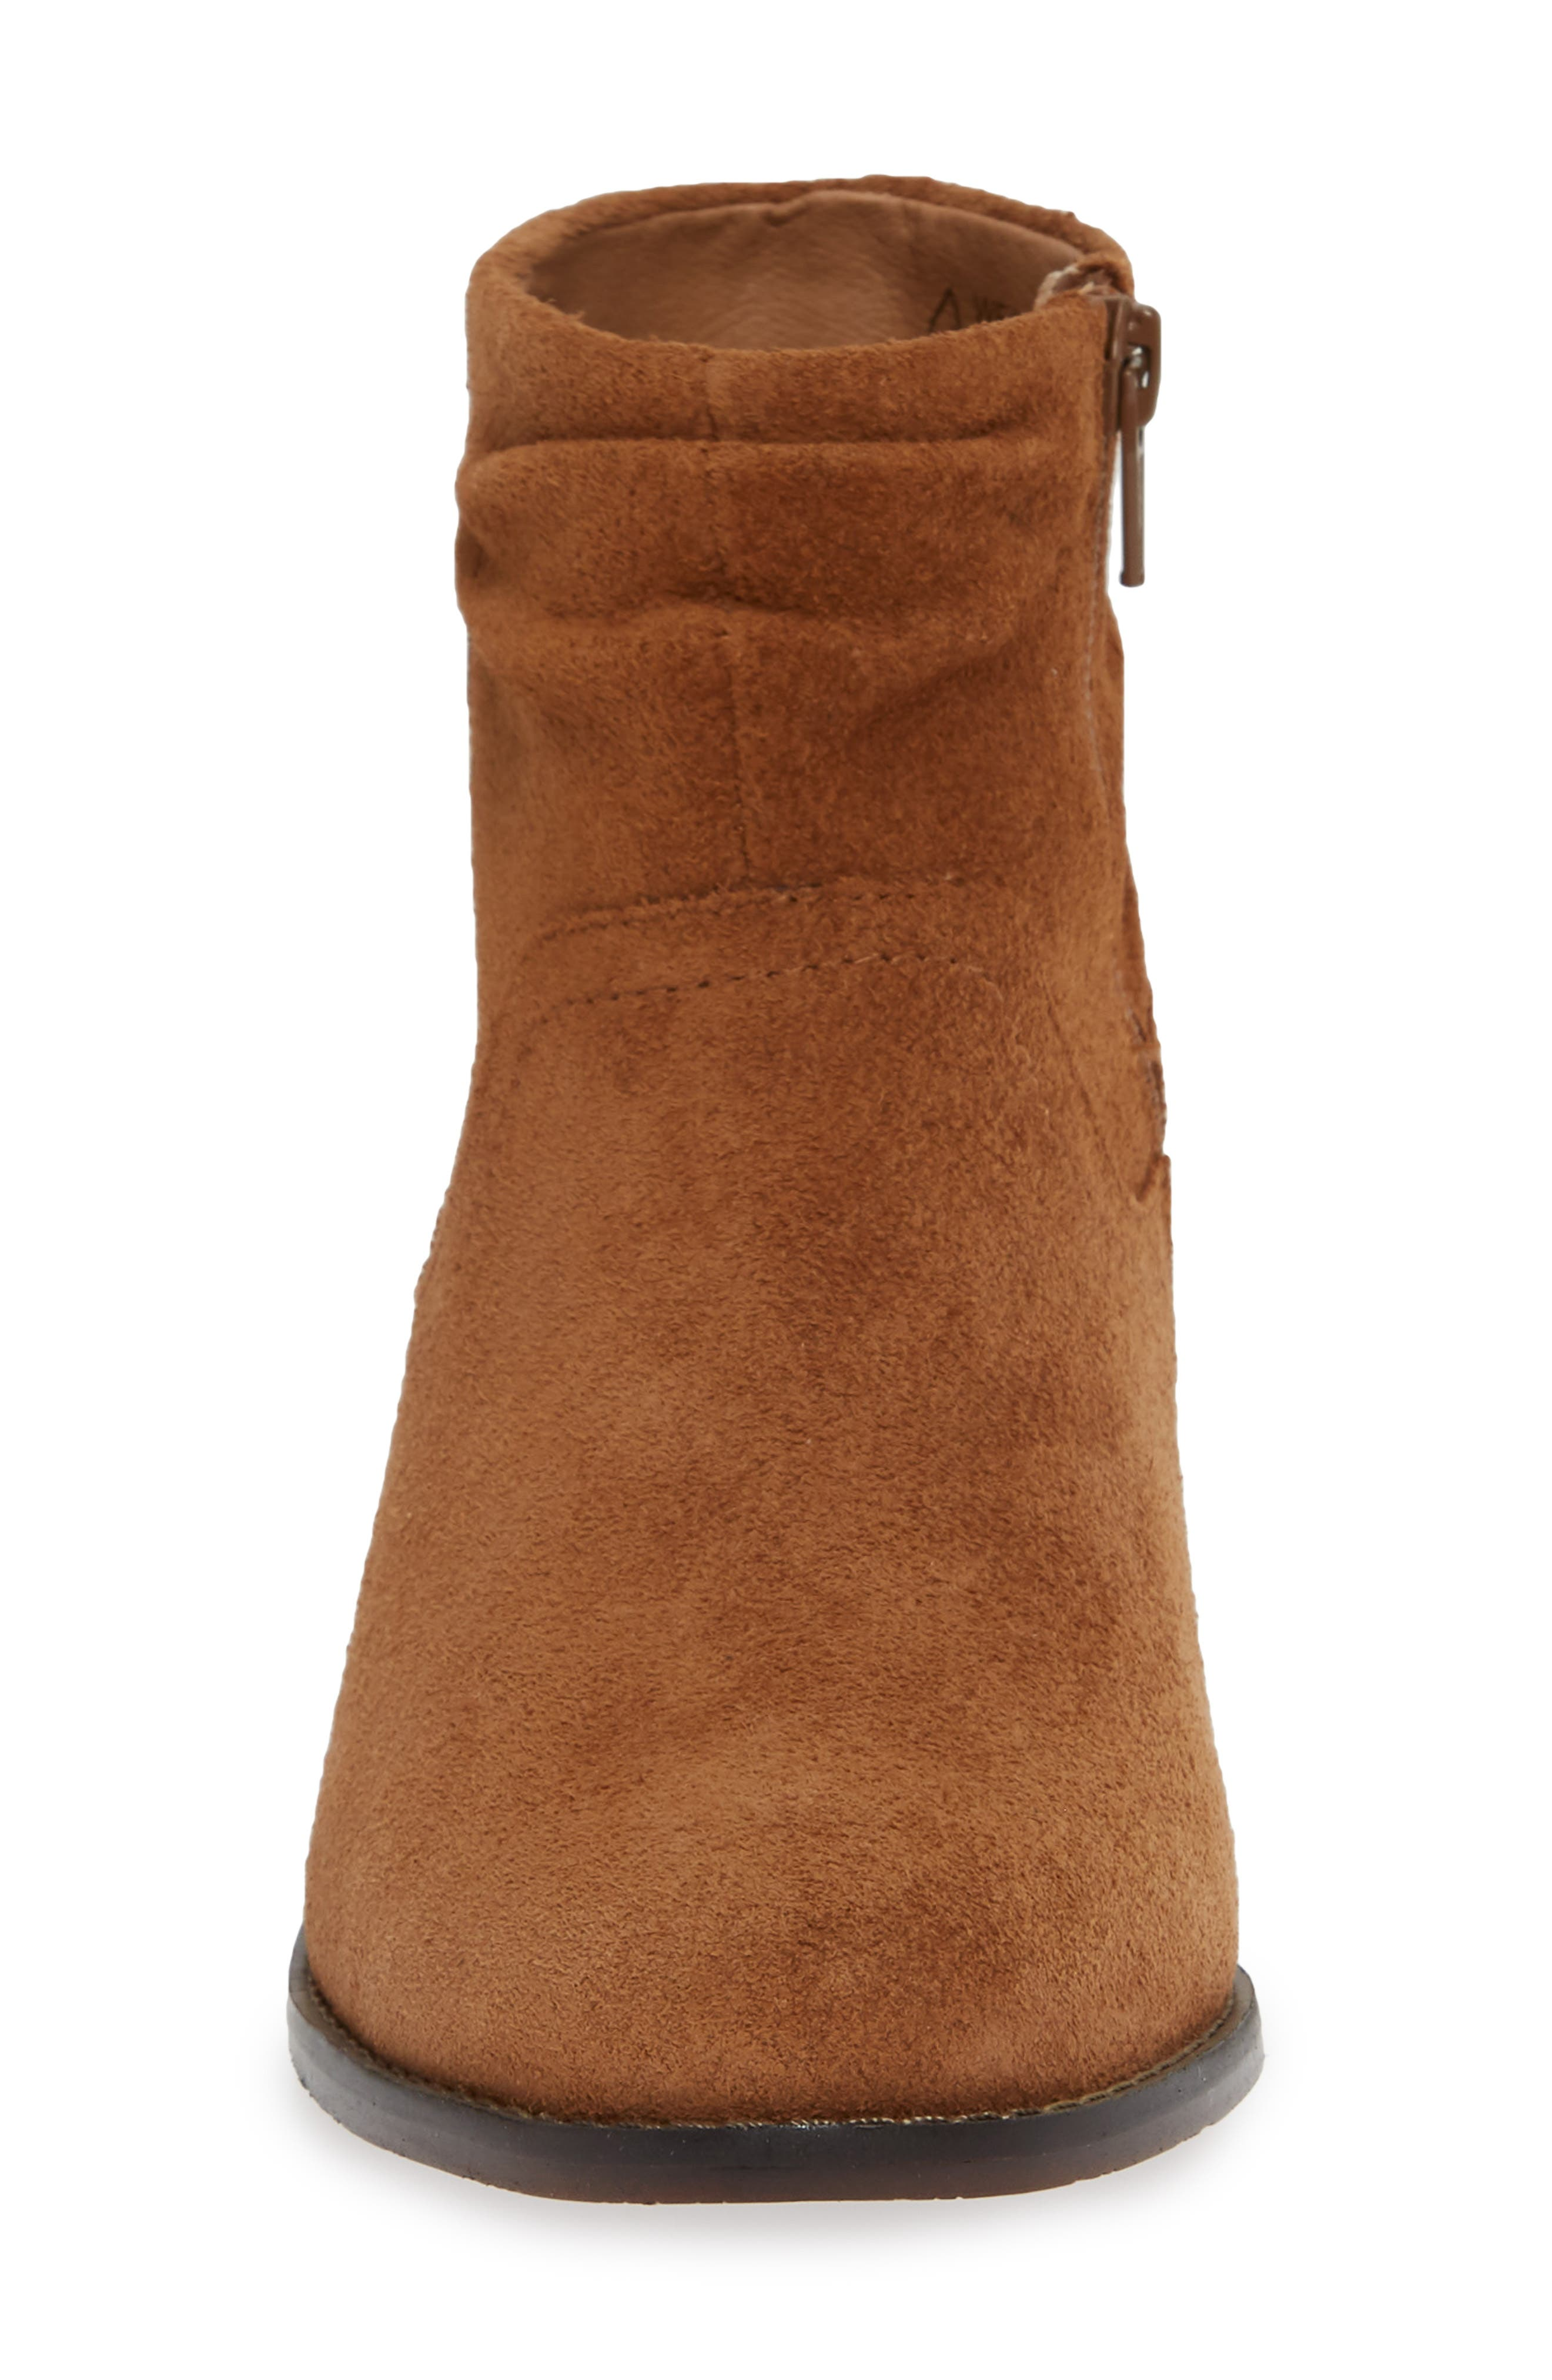 Kanela Low Slouchy Bootie,                             Alternate thumbnail 4, color,                             TOFFEE SUEDE